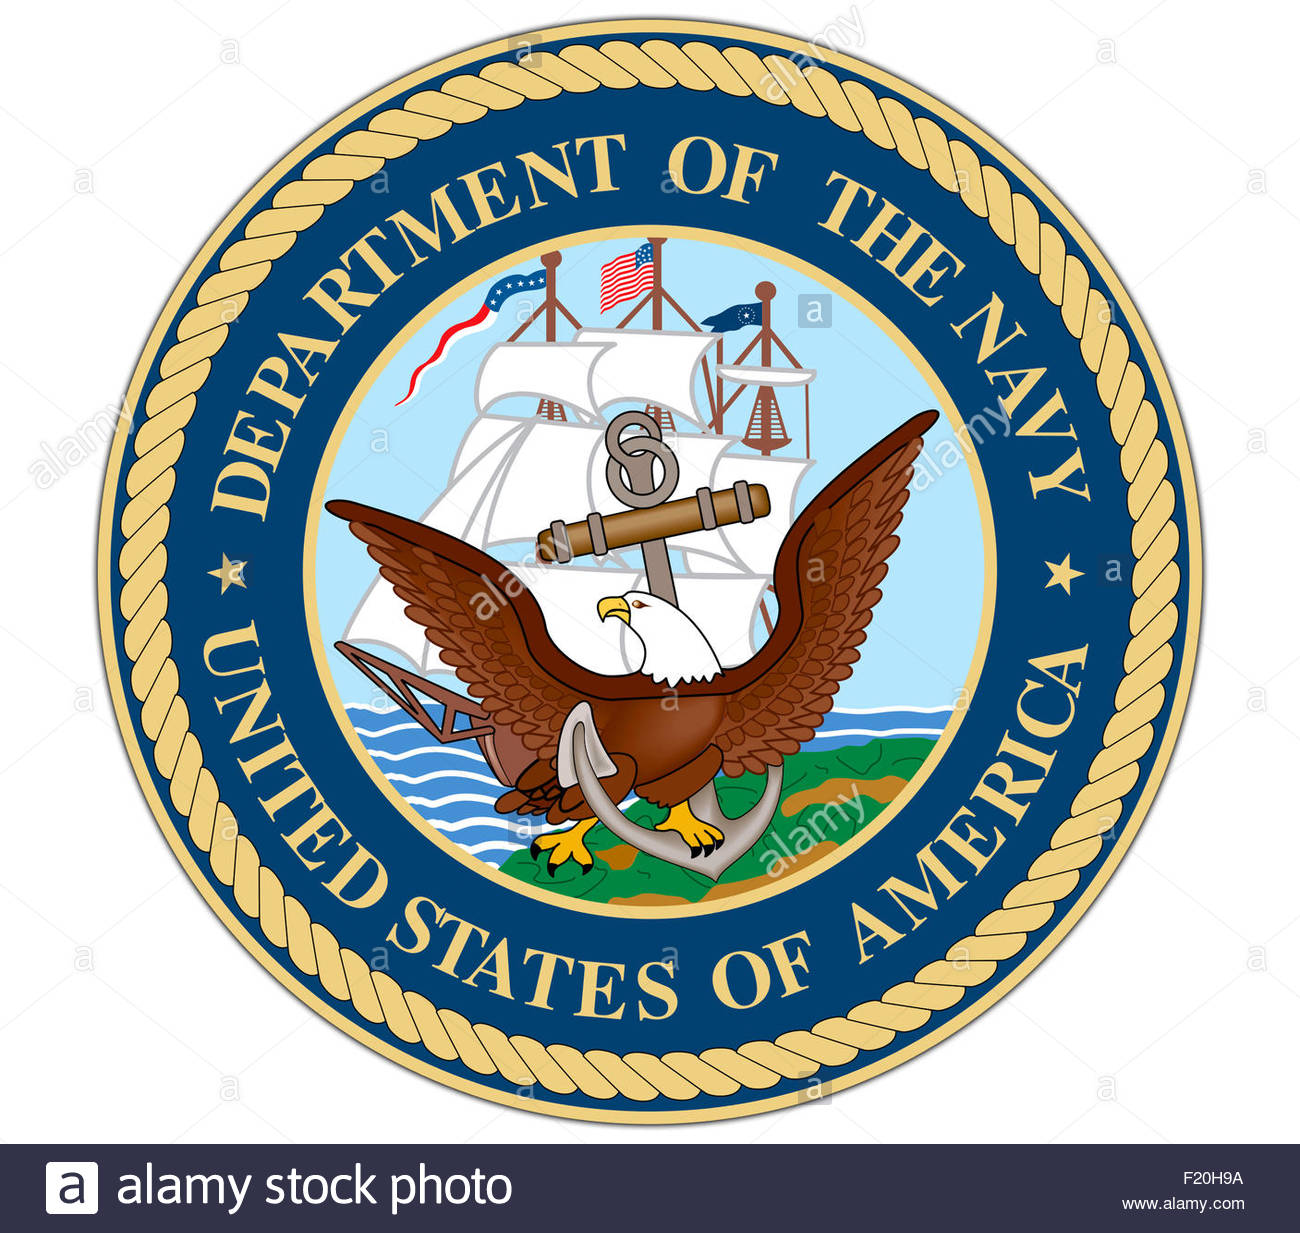 Department of the Navy DON logo icon - Stock Image